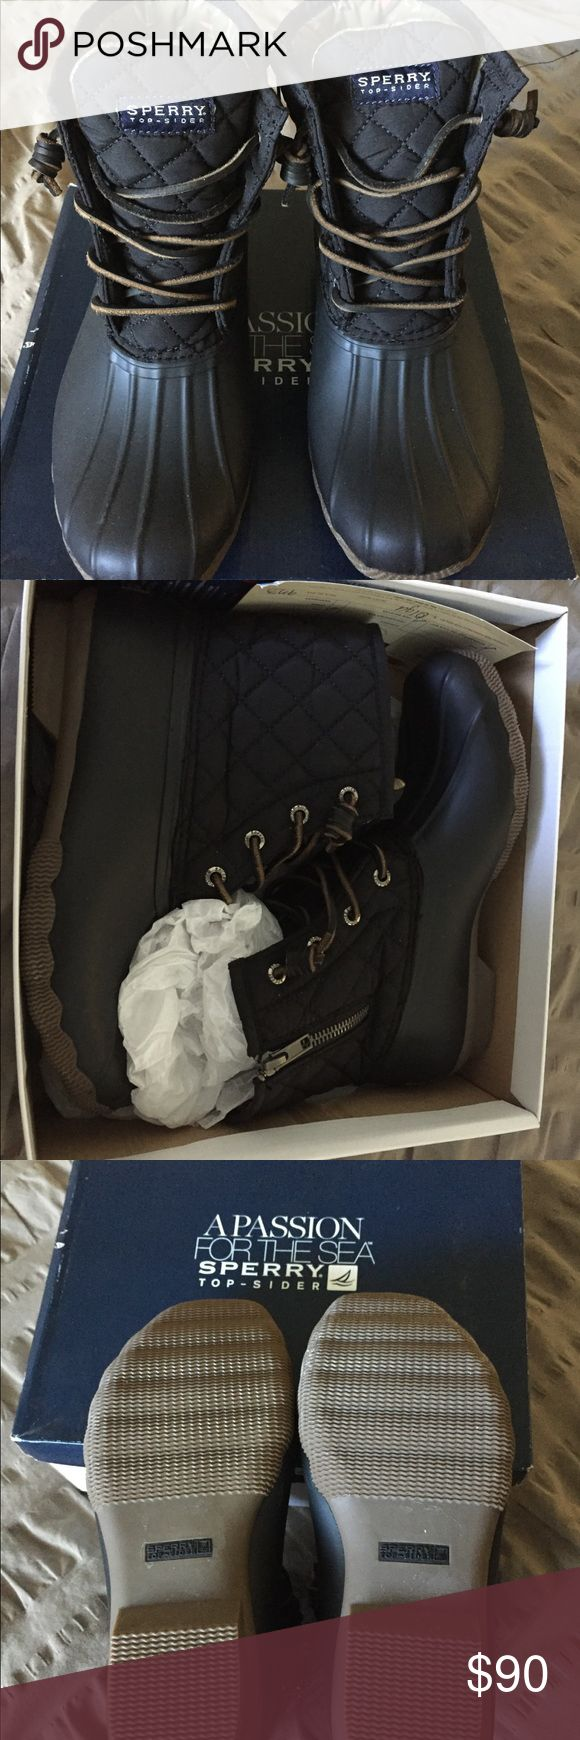 NWOT Sperry Saltwater duck boots New Sperry saltwater duck boots Sperry Top-Sider Shoes Winter & Rain Boots